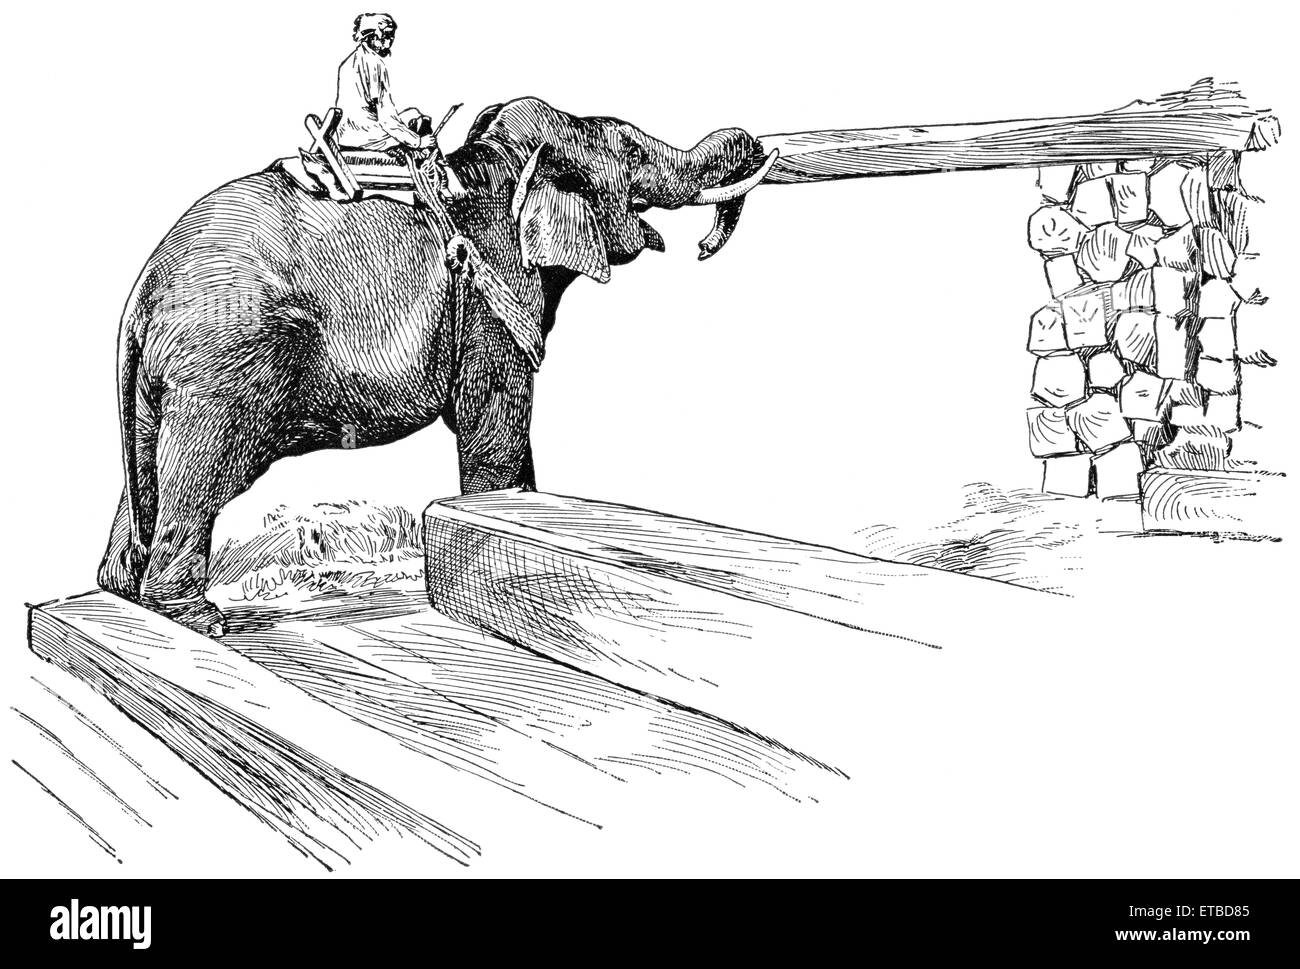 Elephant Completing Work of Piling Timber, Rangoon, Burma, 'Classical Portfolio of Primitive Carriers', - Stock Image